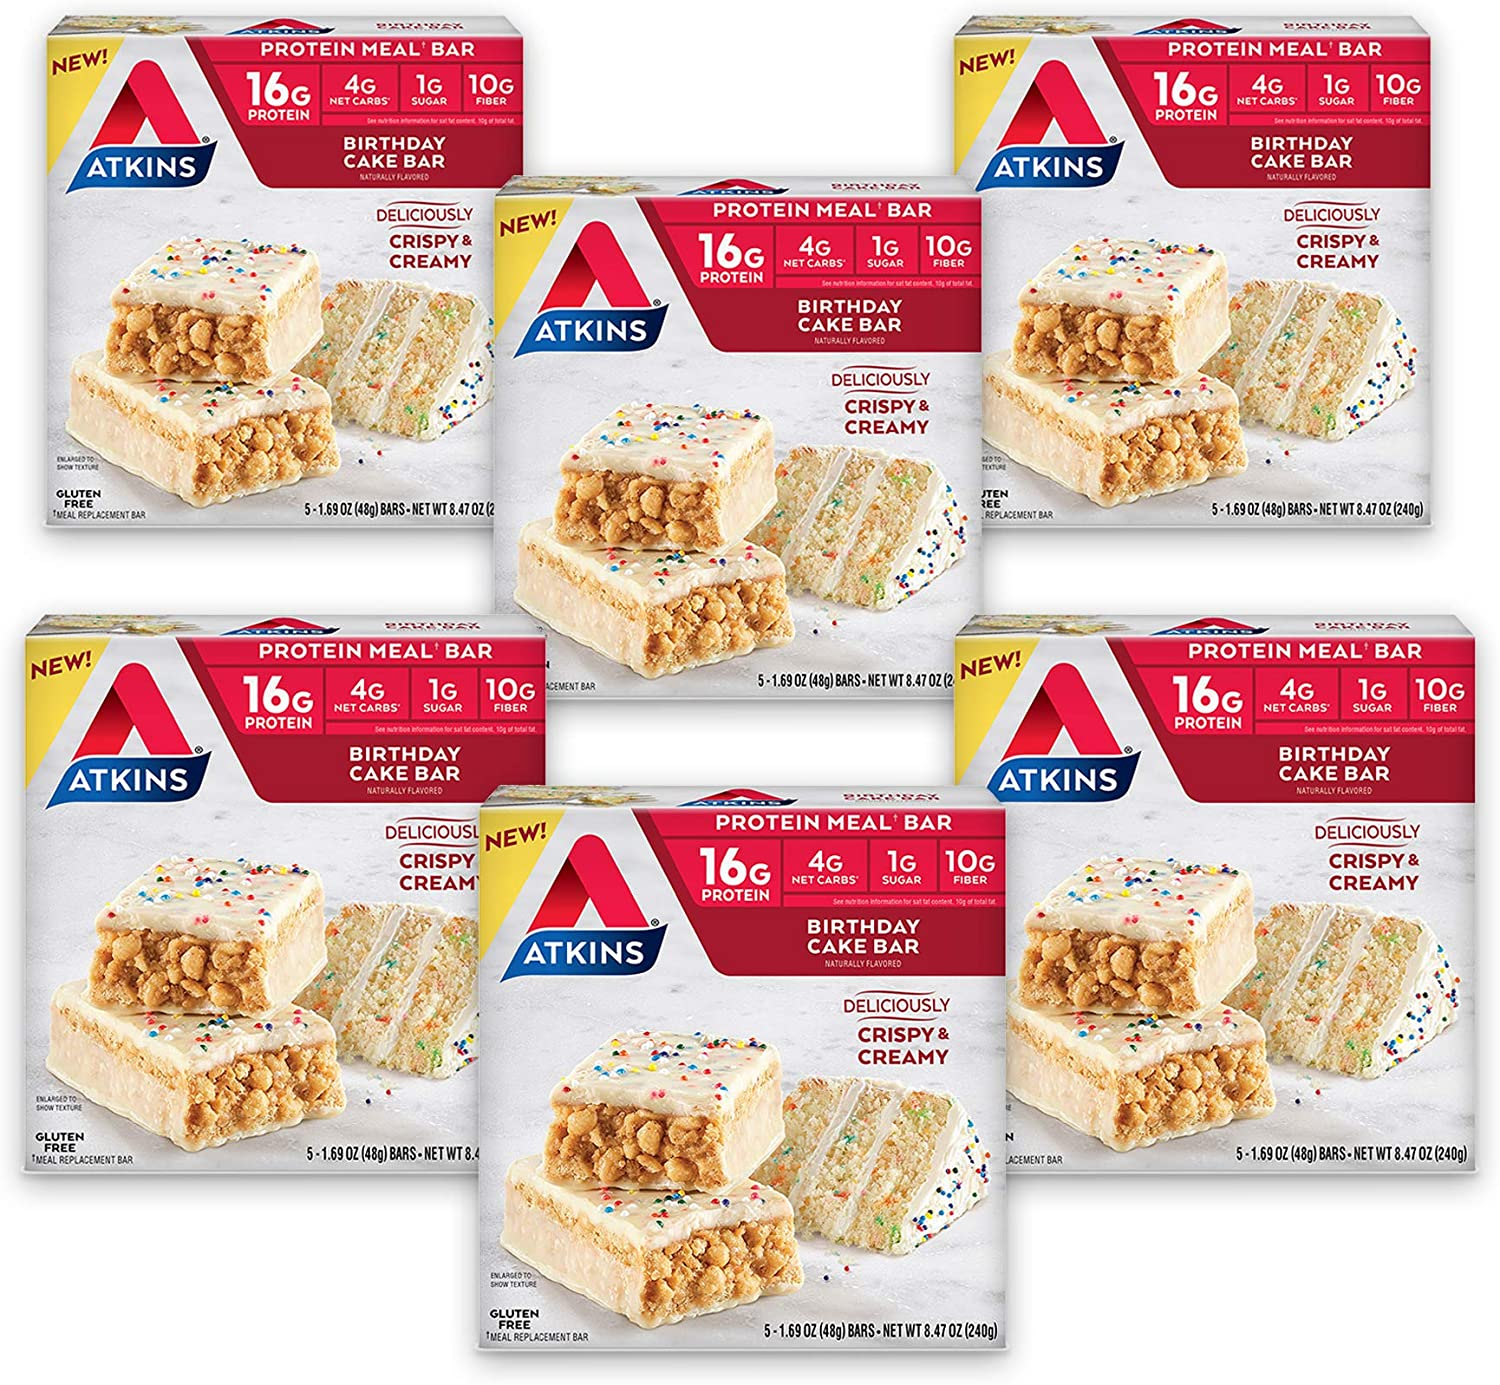 Atkins Birthday Cake Protein Meal Bar. Crispy & Creamy with Real Almond Butter. Keto-Friendly. (30 Bars)